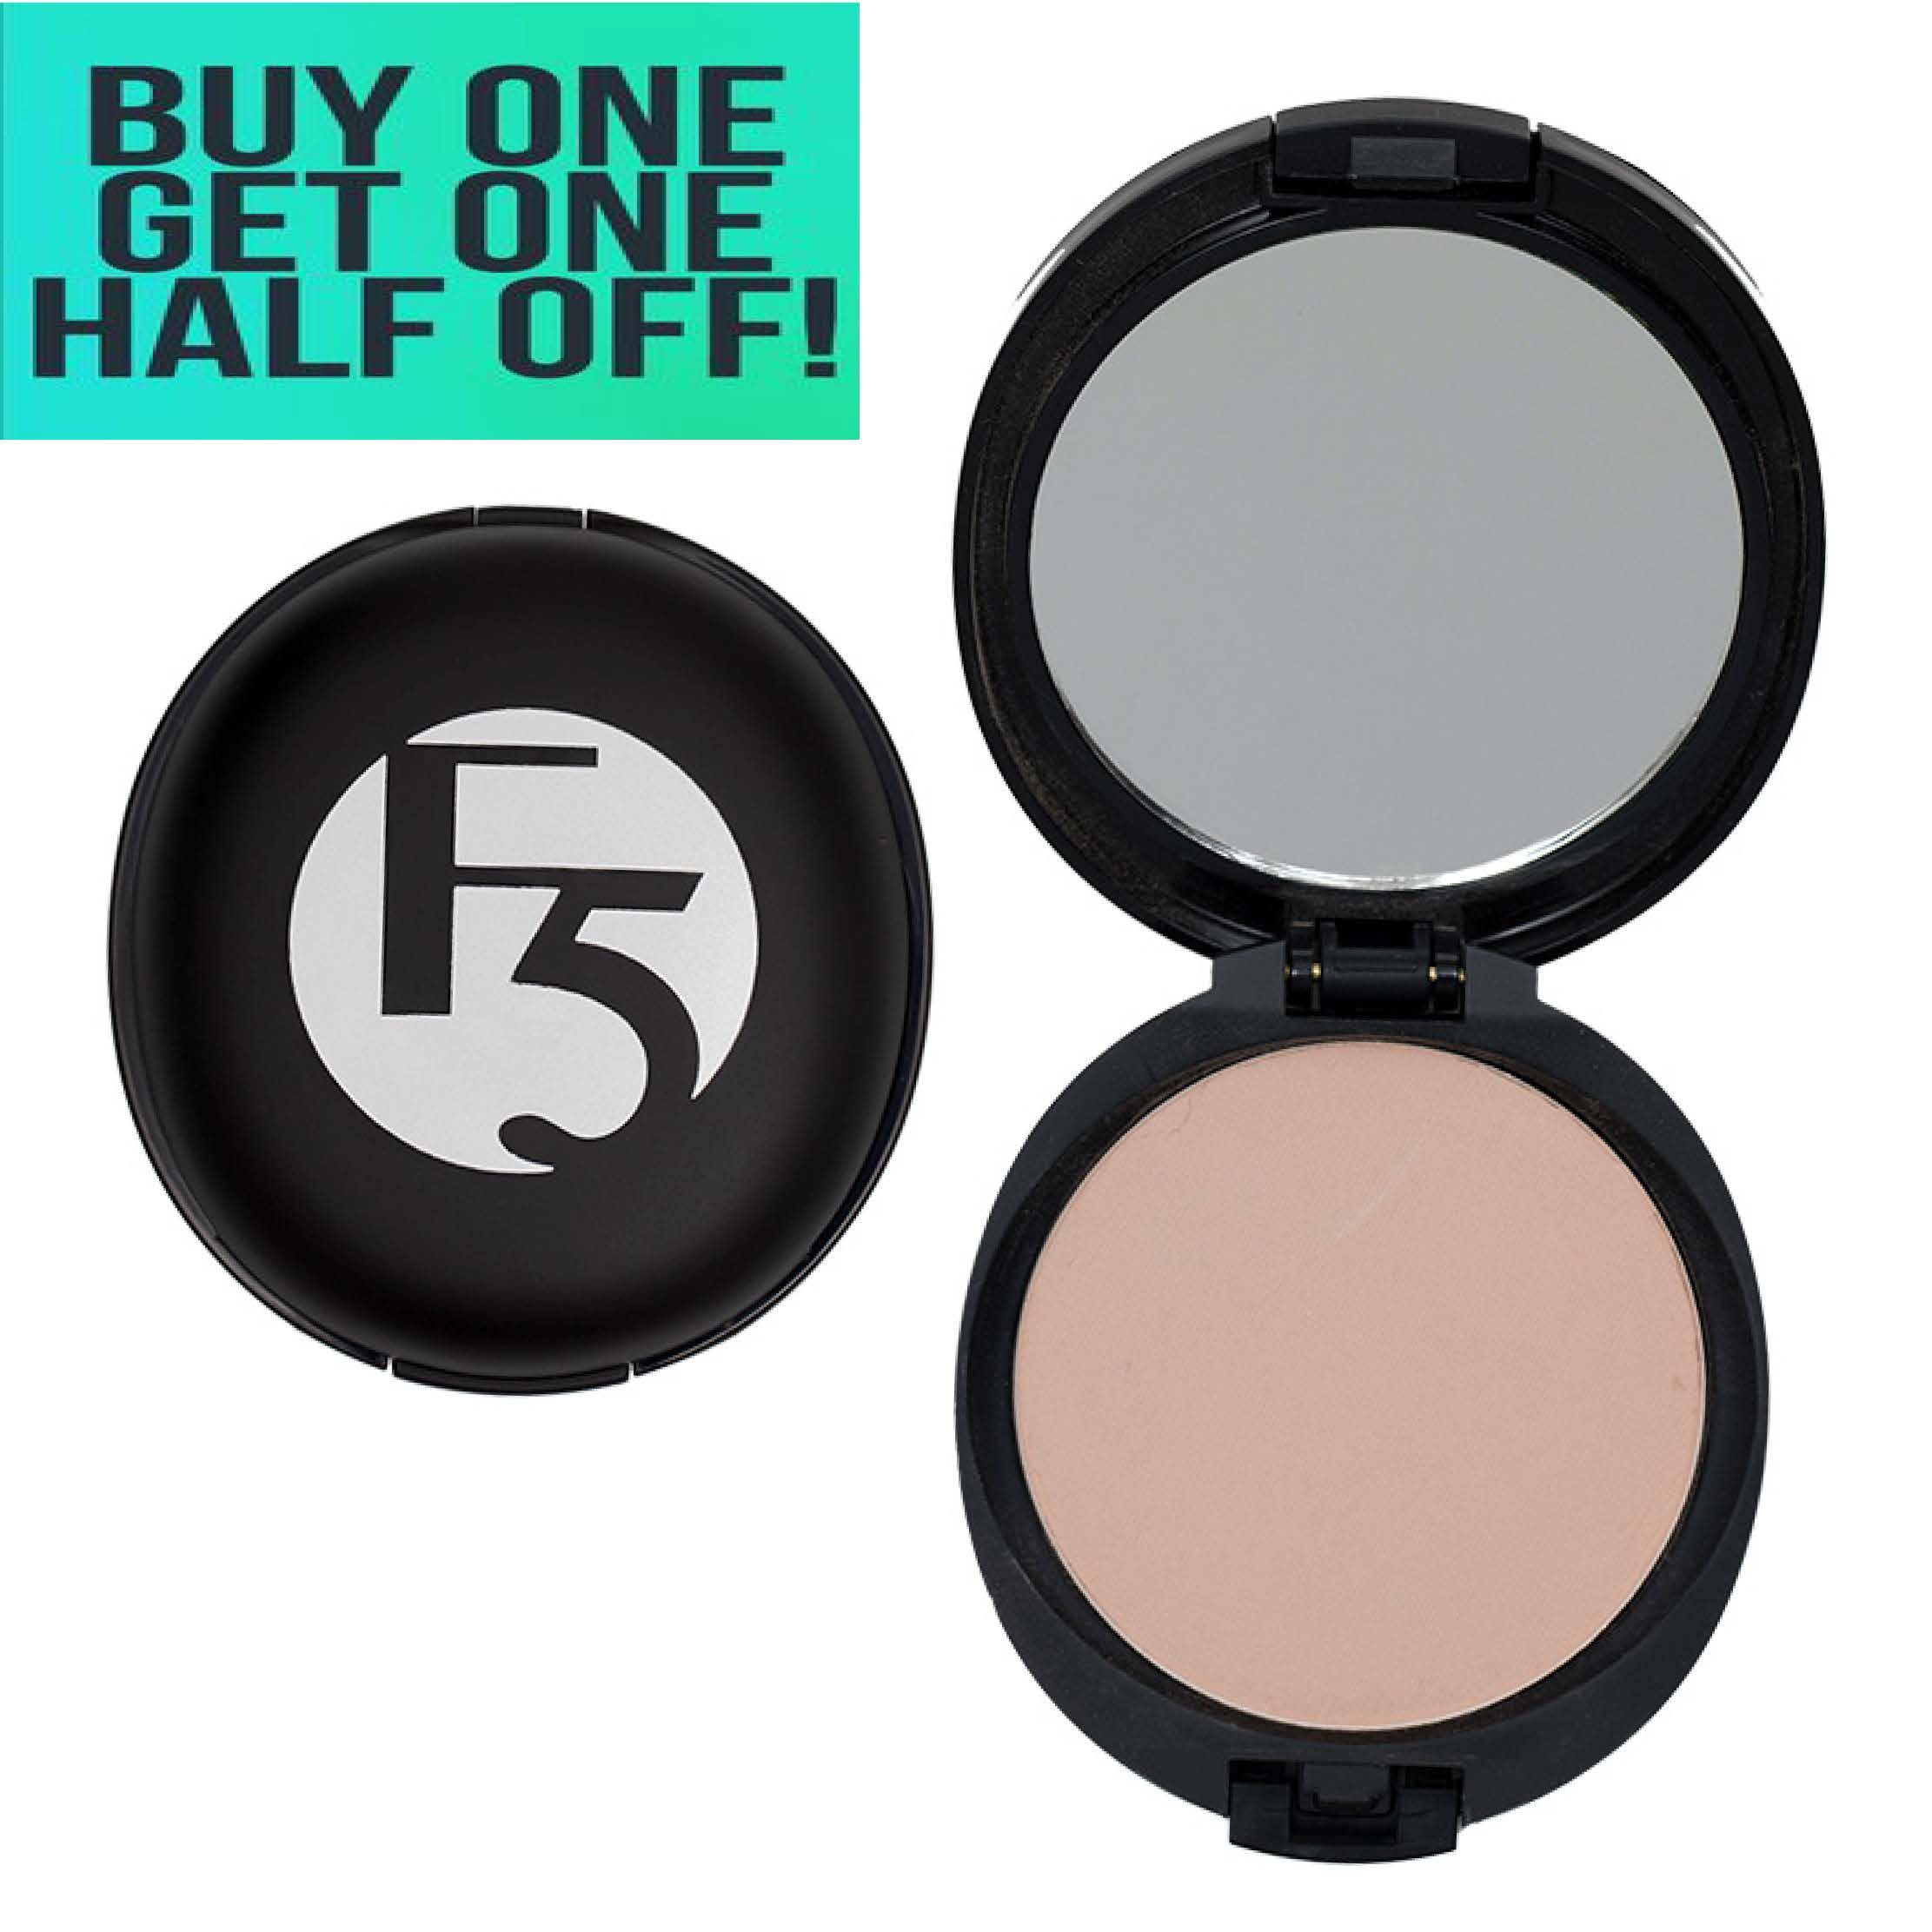 BOGO P1 Wet-Dry Powder Foundation